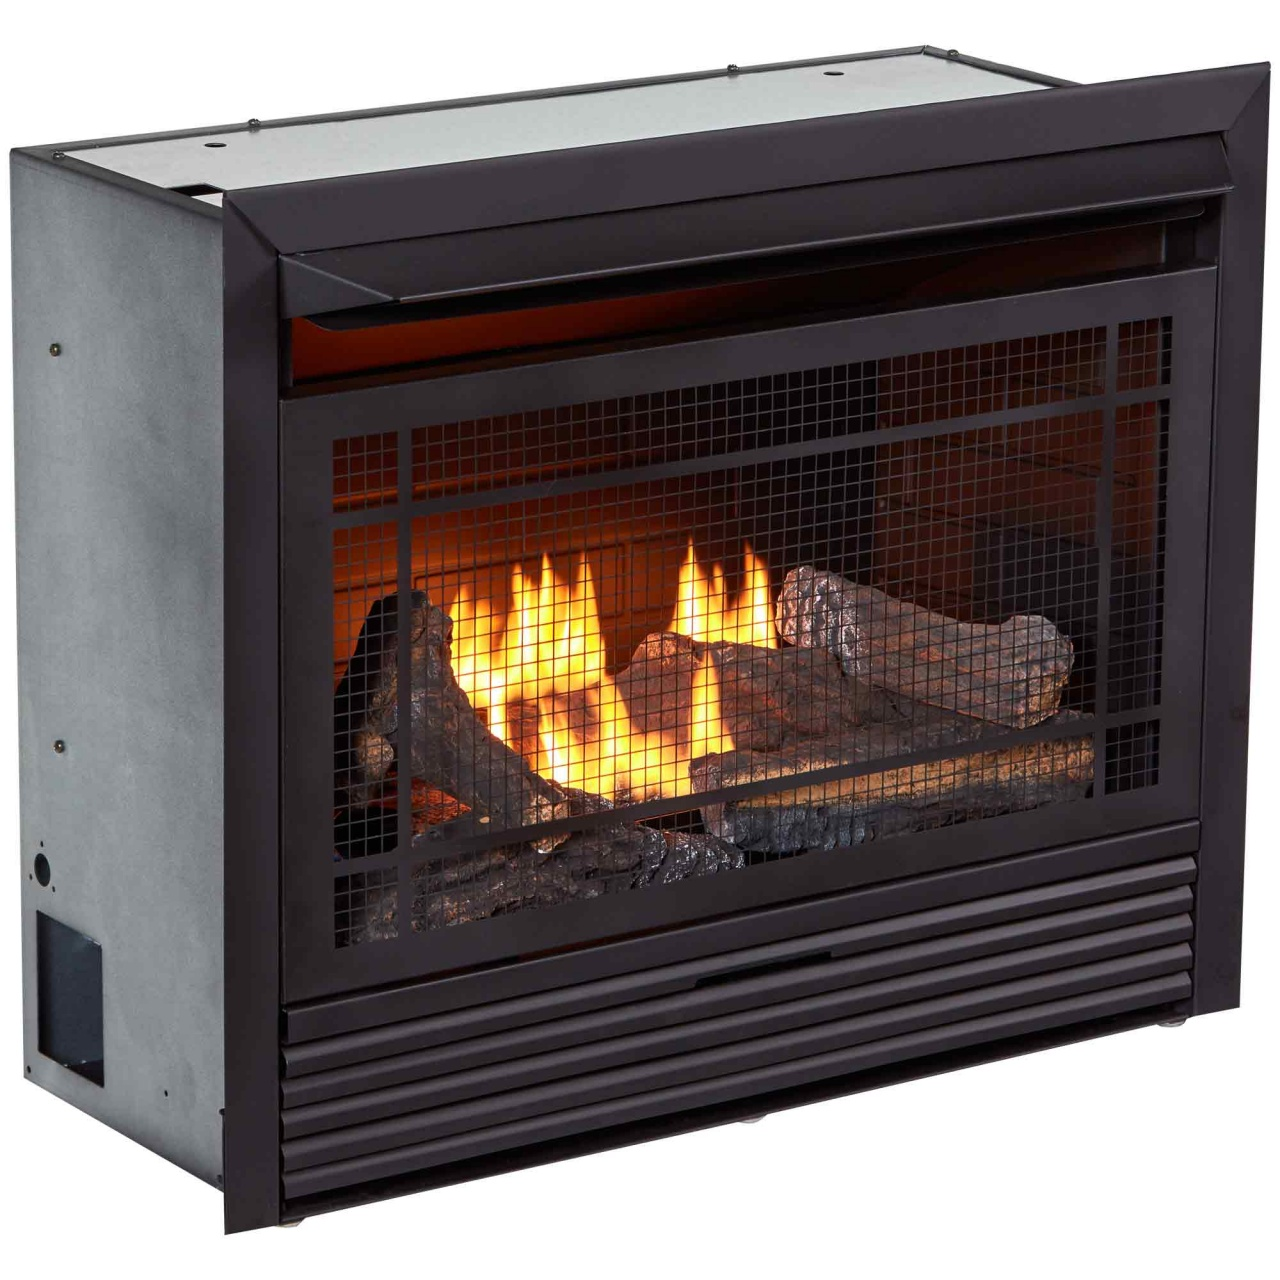 febo flame electric fireplace big lots fireplace results home and outdoor from febo flame electric fireplace big lots 2